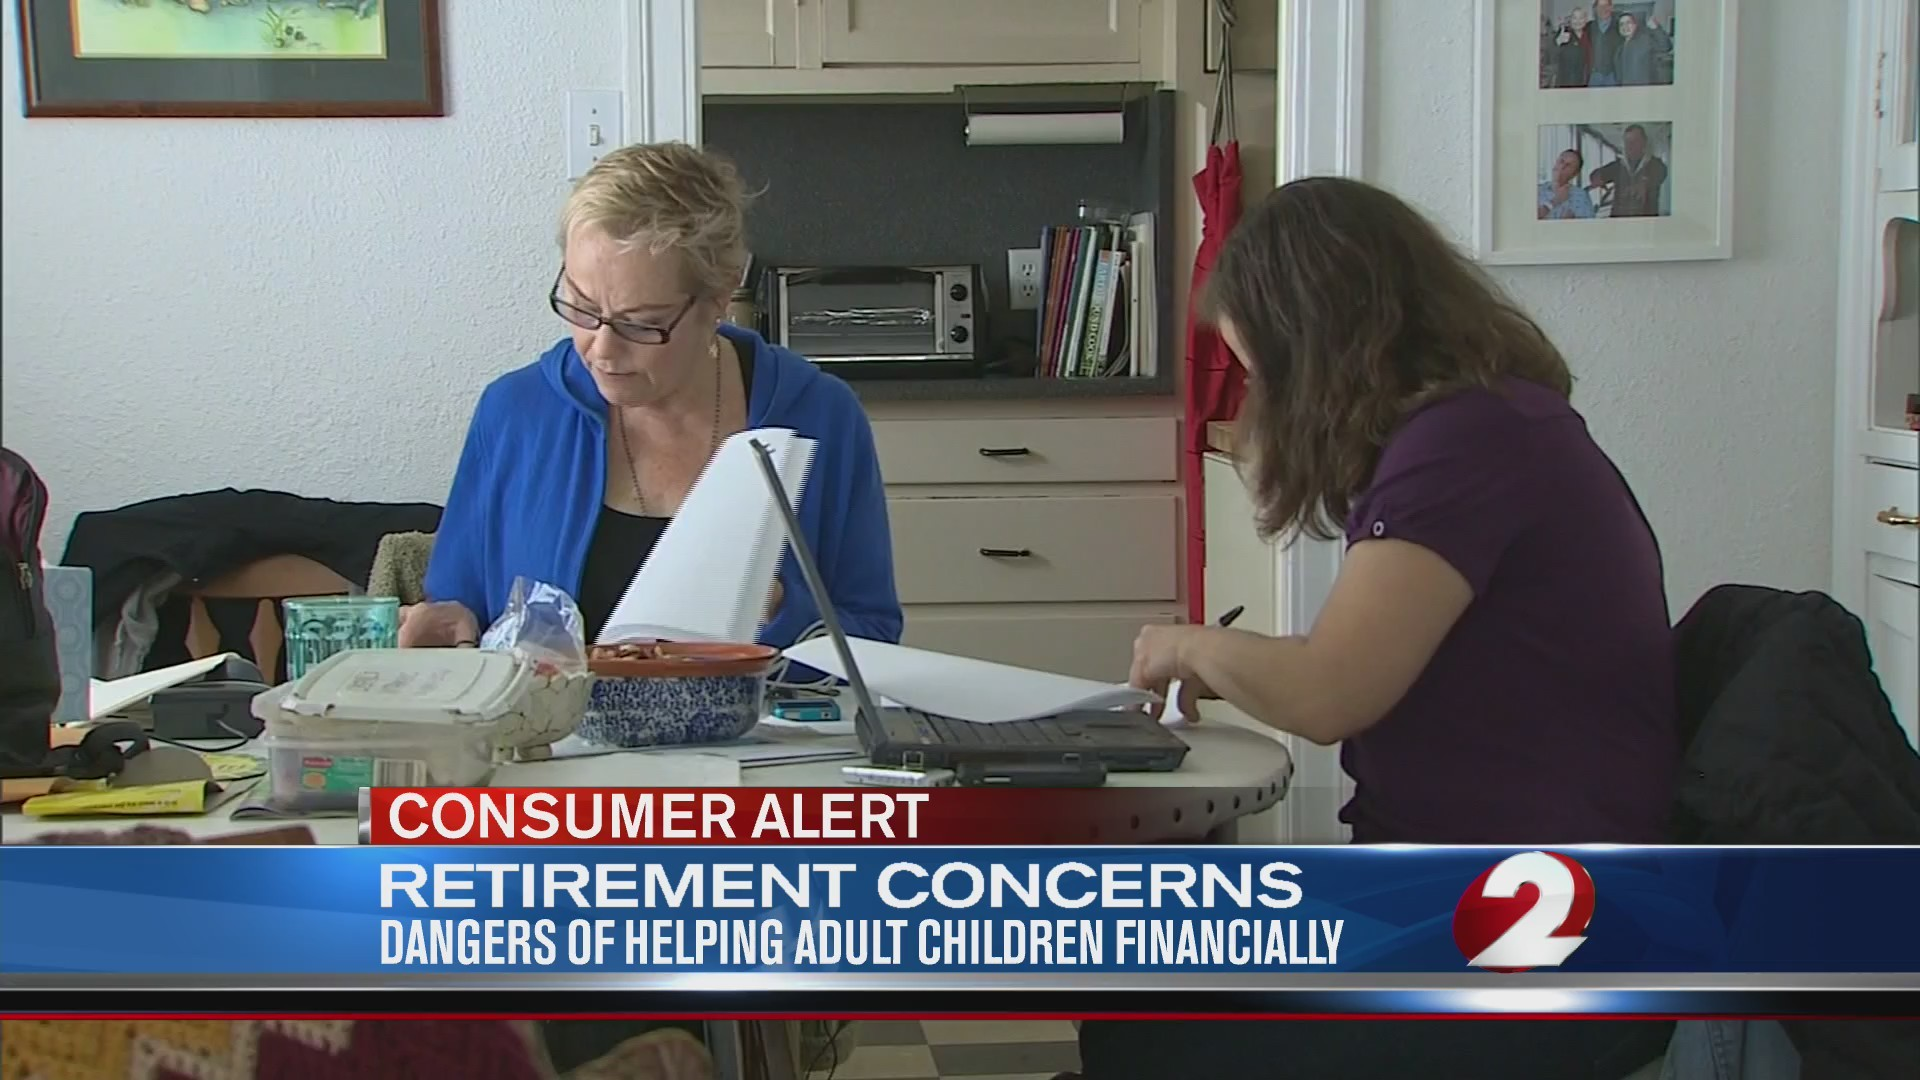 Retirement Concerns: Dangers of helping adult children financially